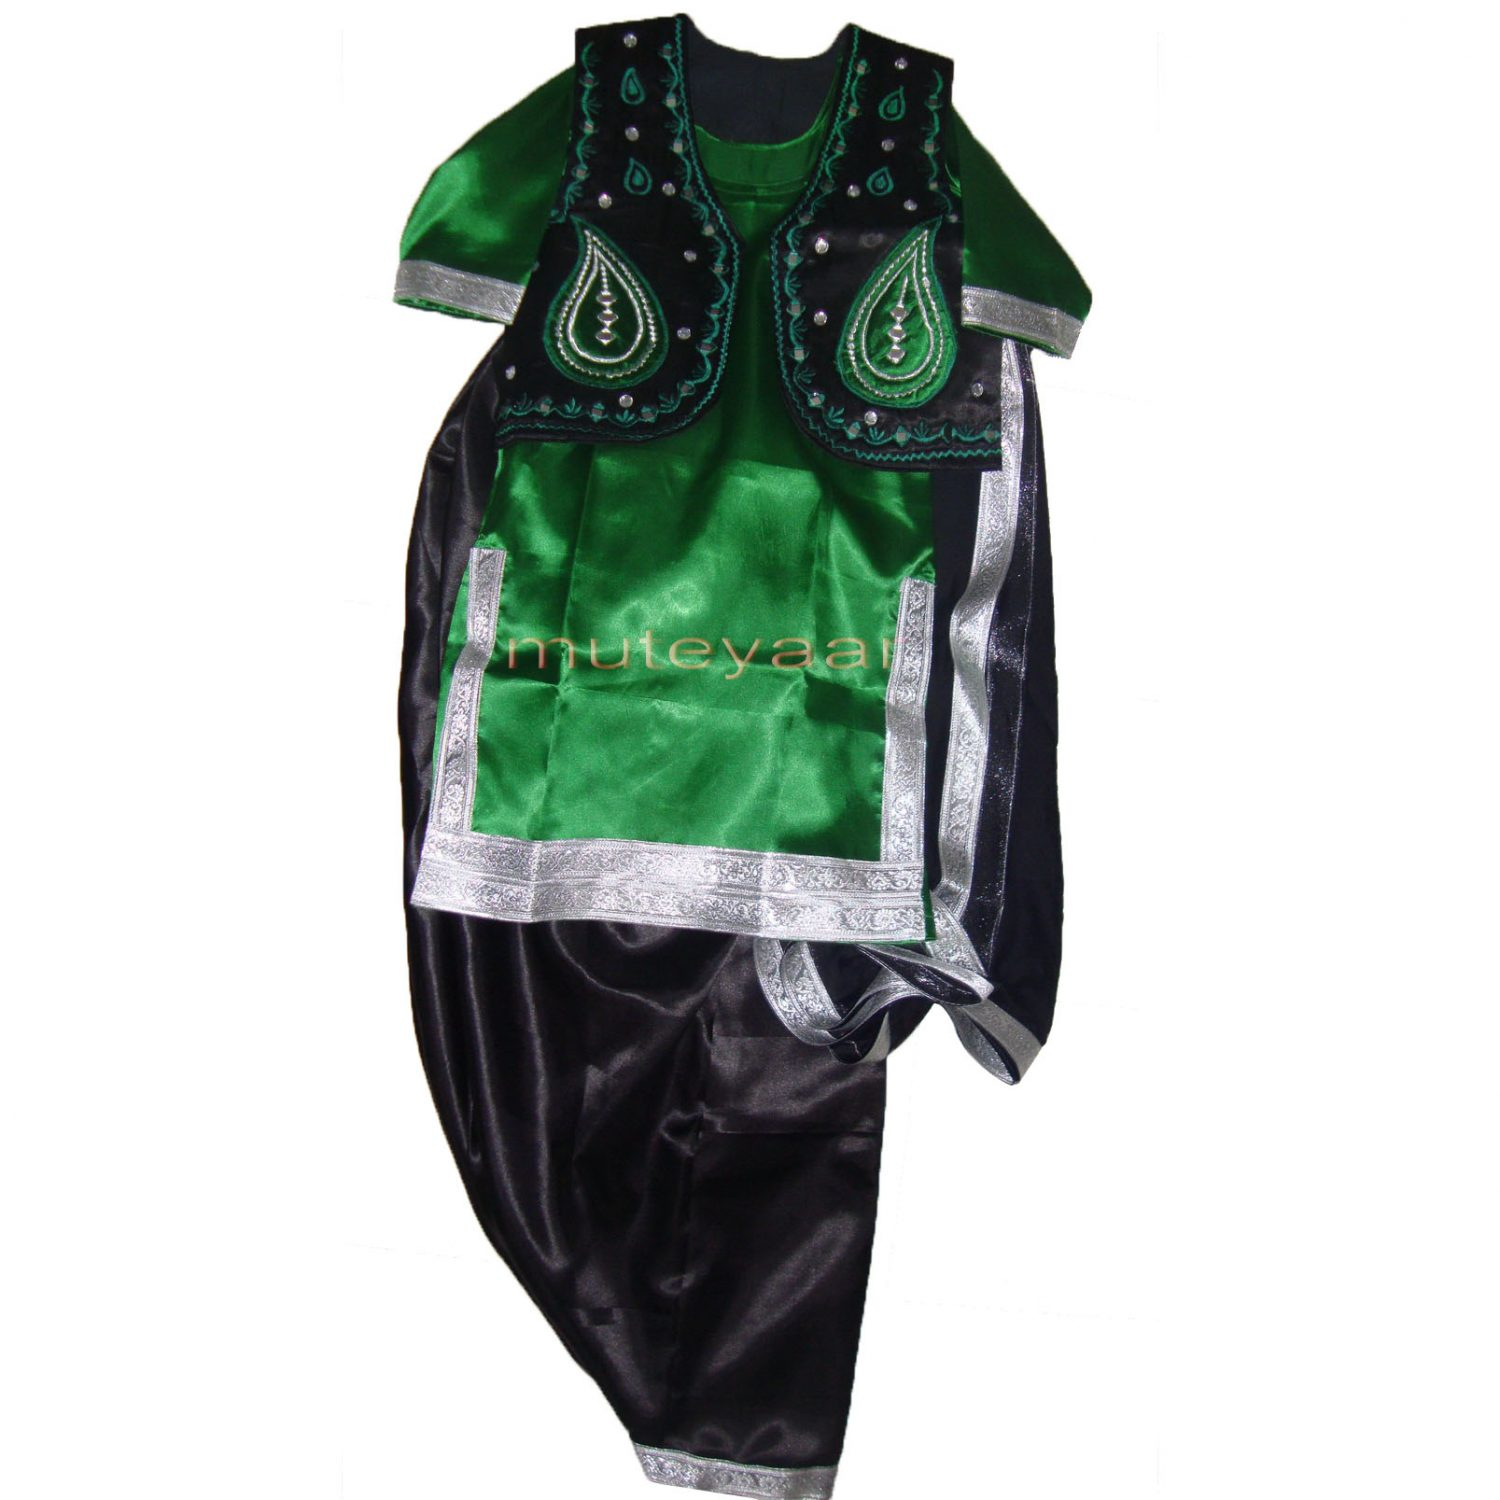 Black Green Girl's Bhangra Costume with separate jacket / vest 1